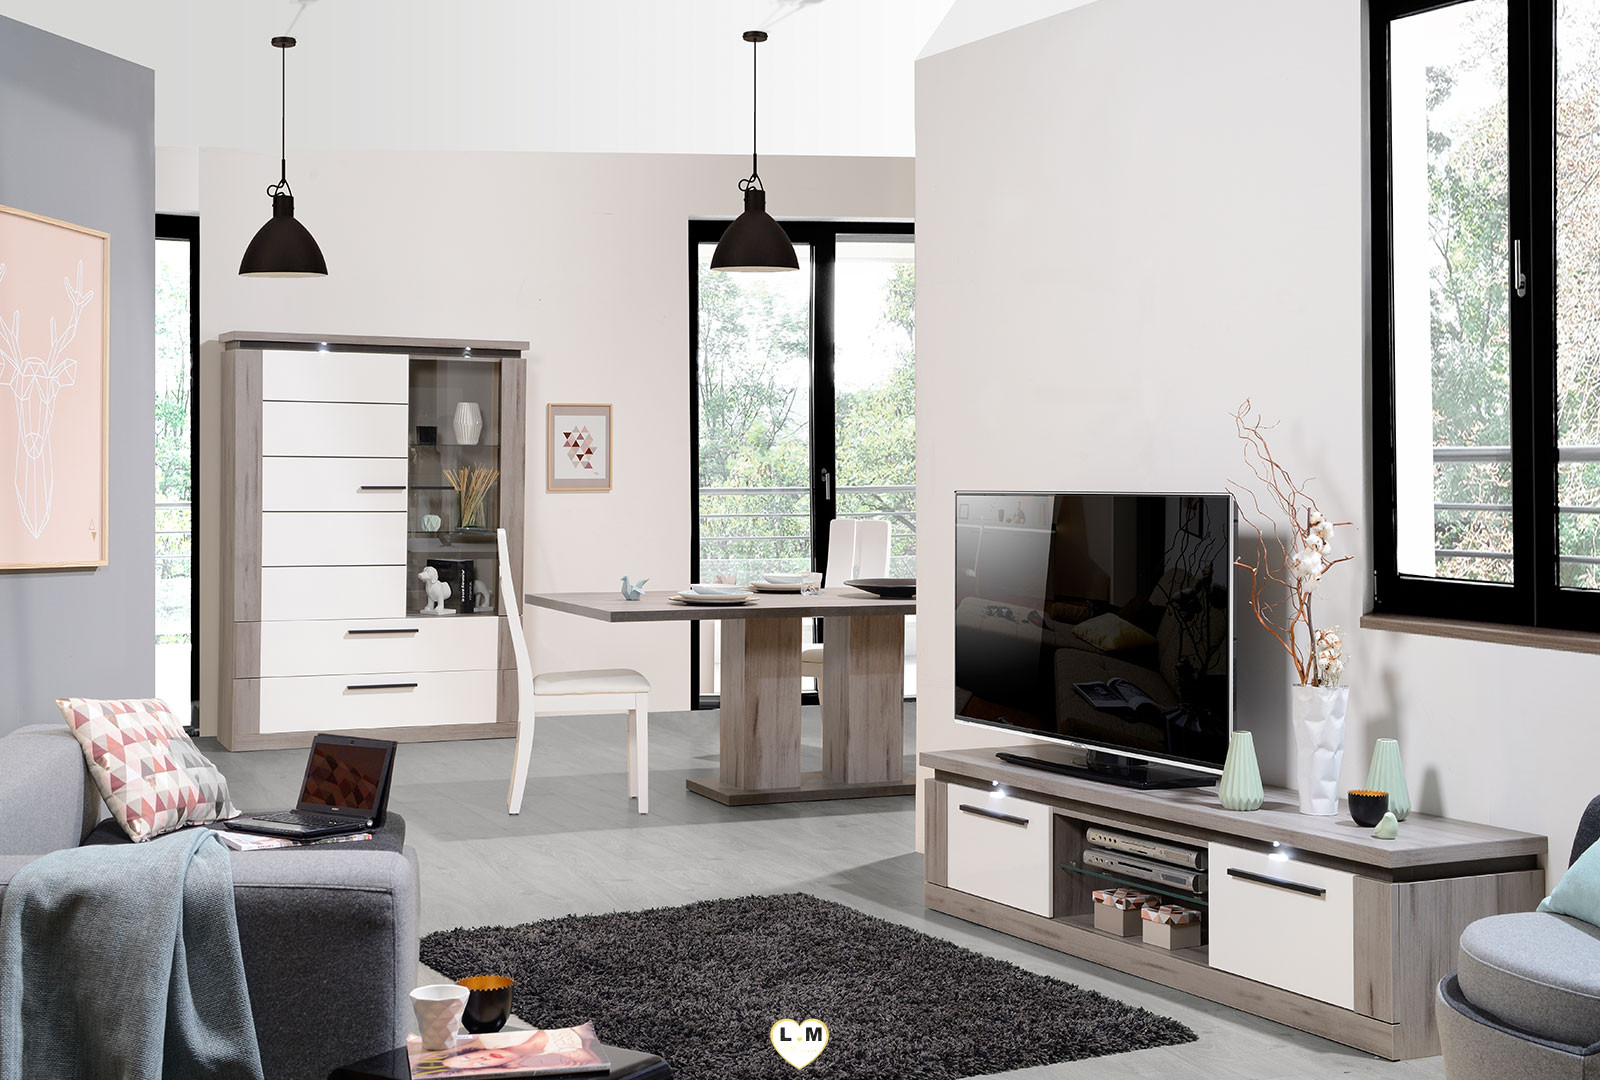 pornichet laque blanc et taupe sejour salle a manger moderne le meuble tv lignemeuble com. Black Bedroom Furniture Sets. Home Design Ideas